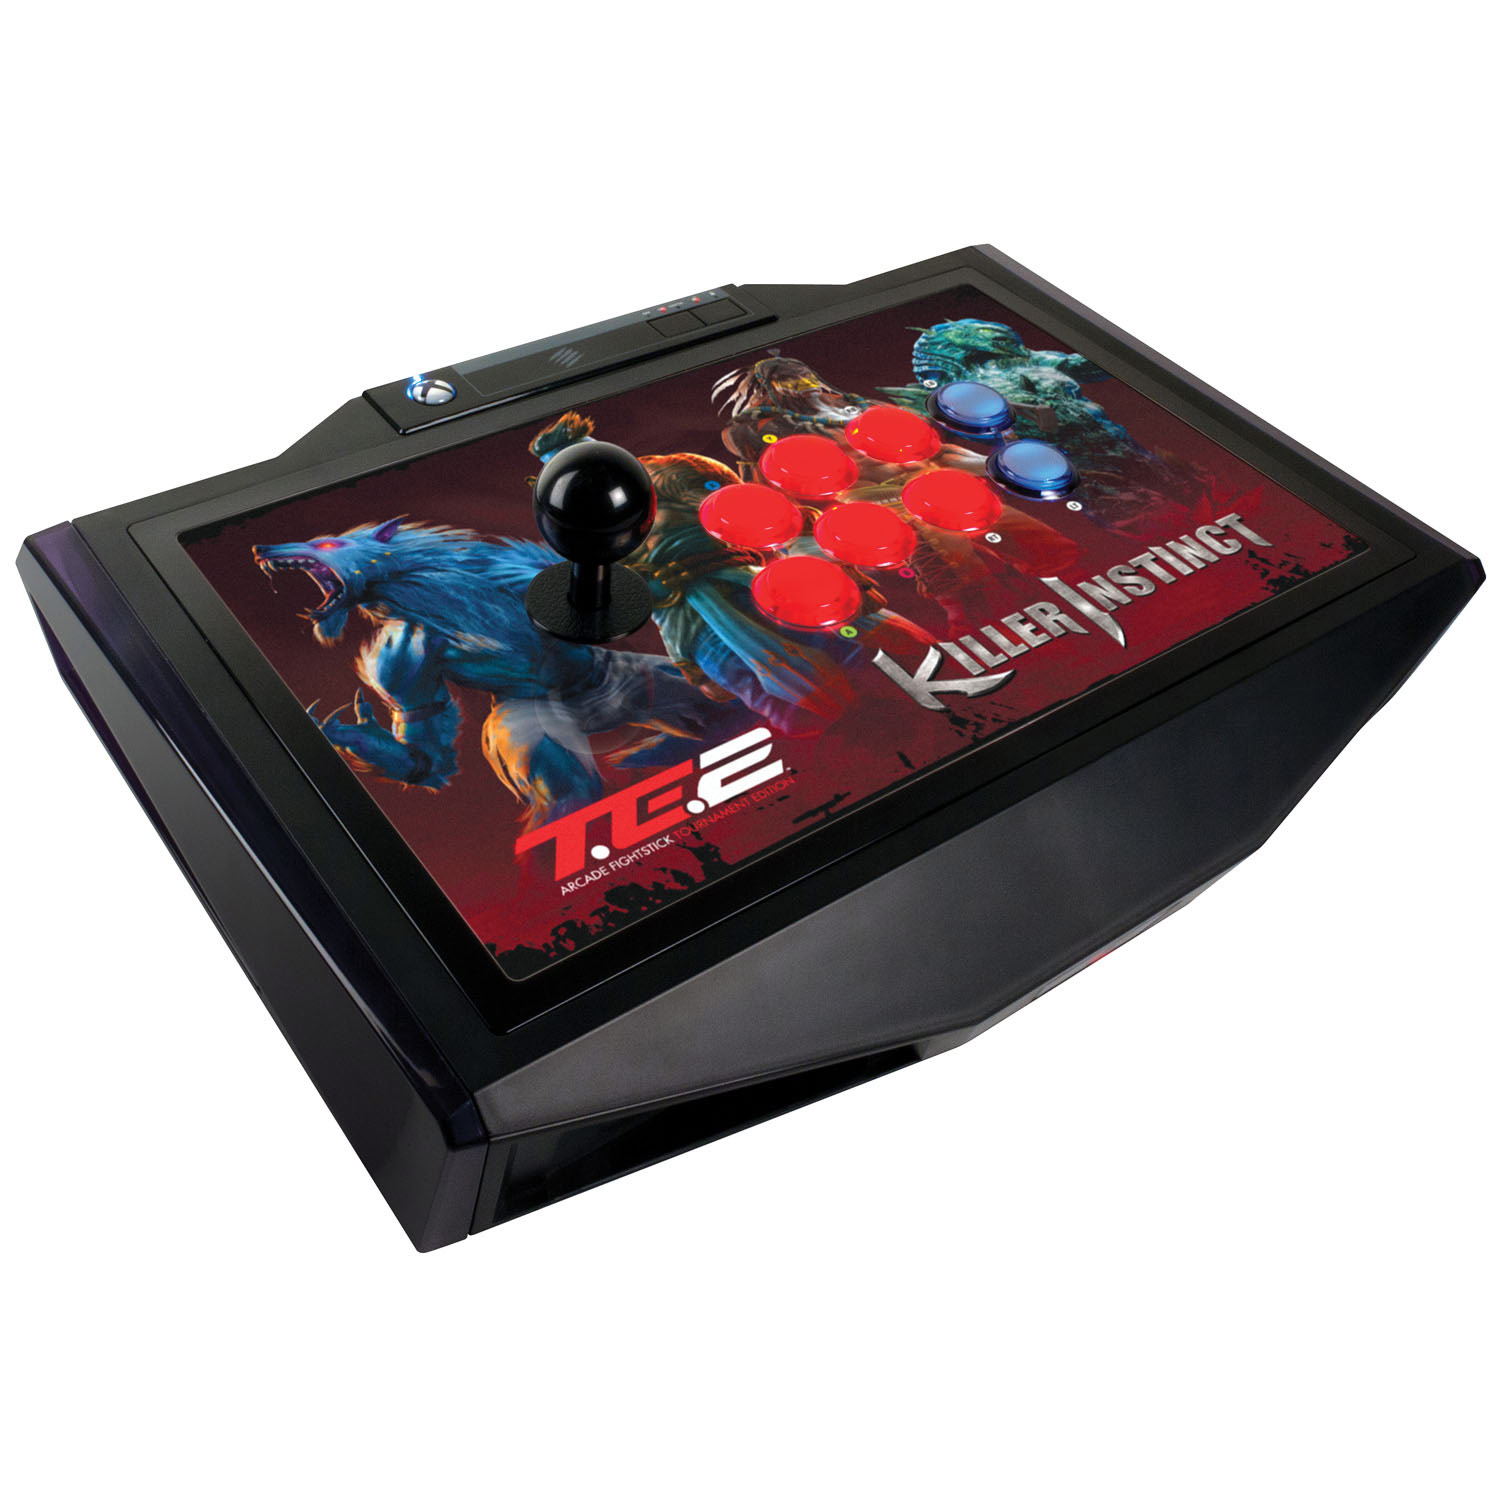 Killer Instinct themed arcade stick for Xbox One is now available for pre-order